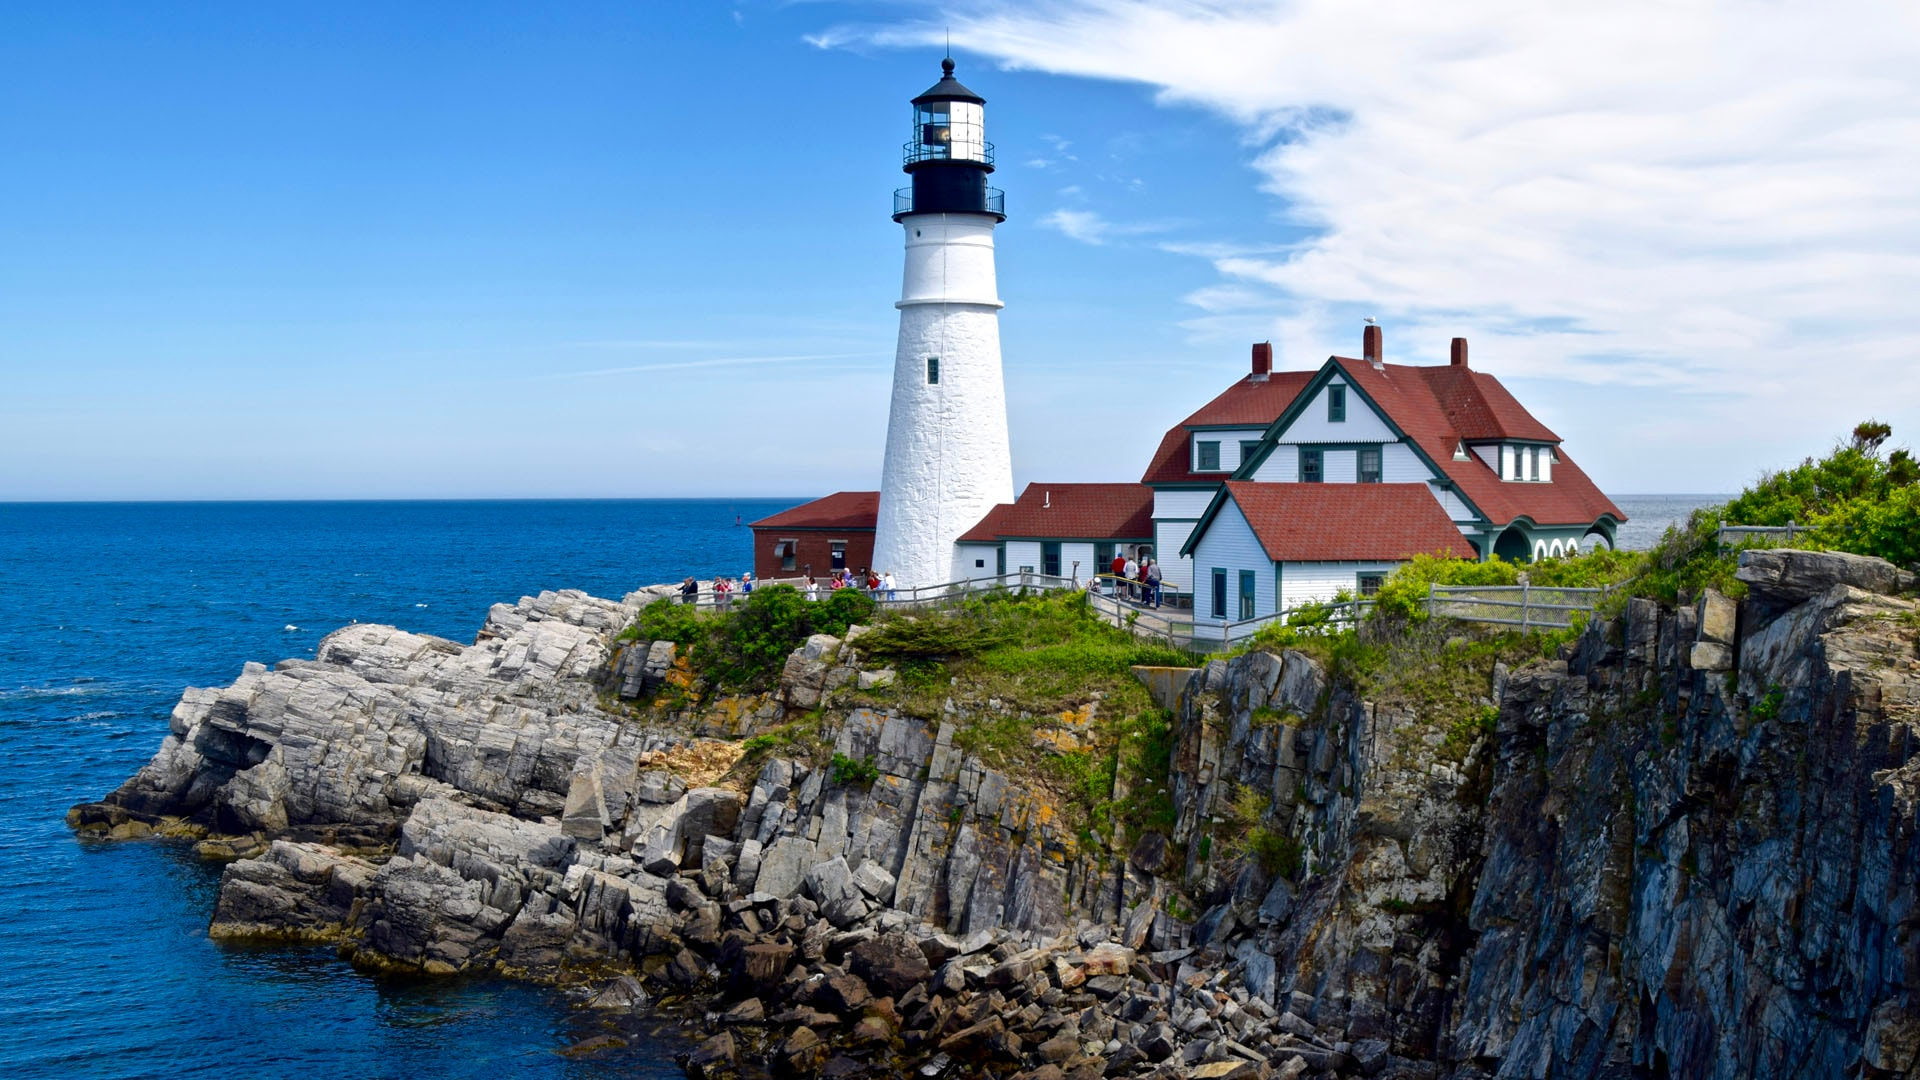 Visit to Portland, Maine Brings Back Memories—and Creates New Ones